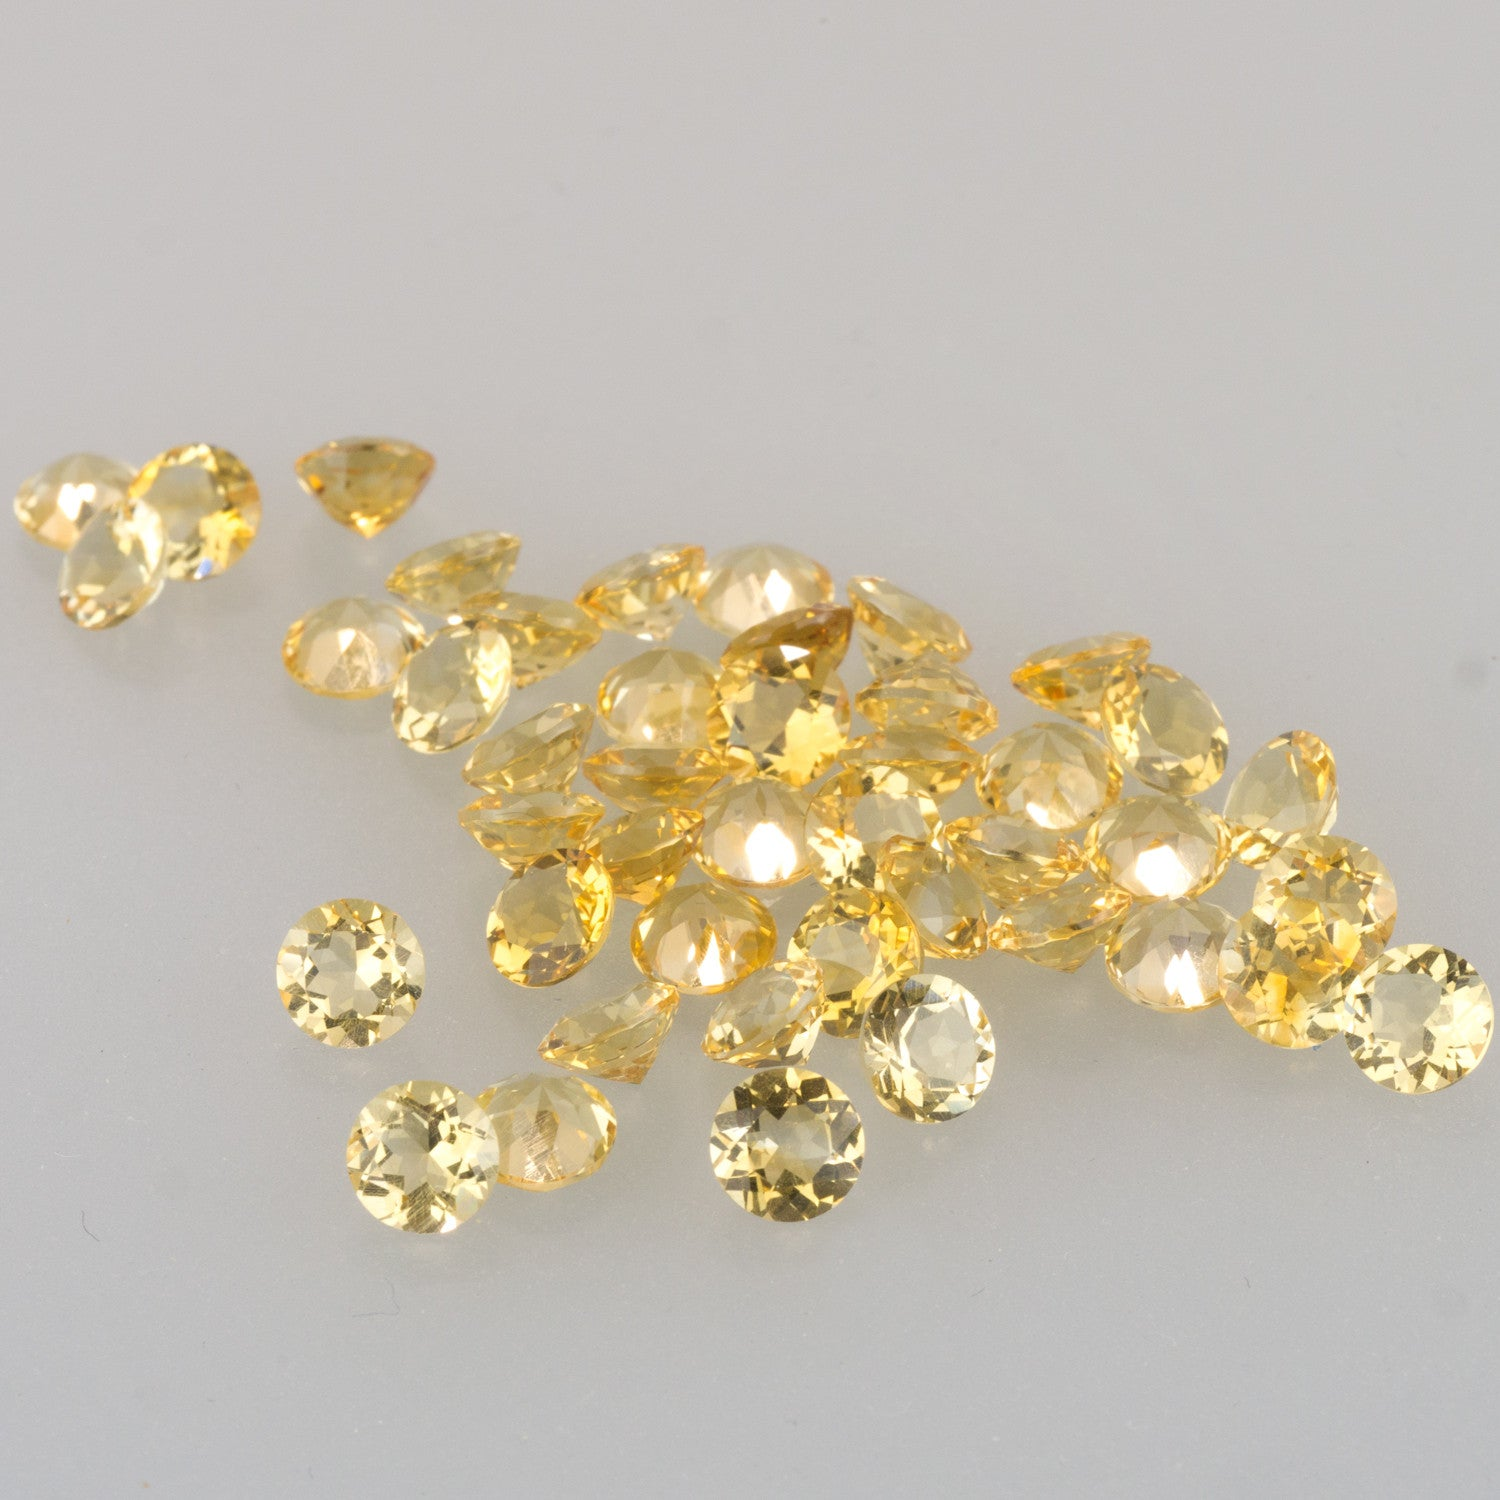 5mm Citrine Calibrated Round Cut